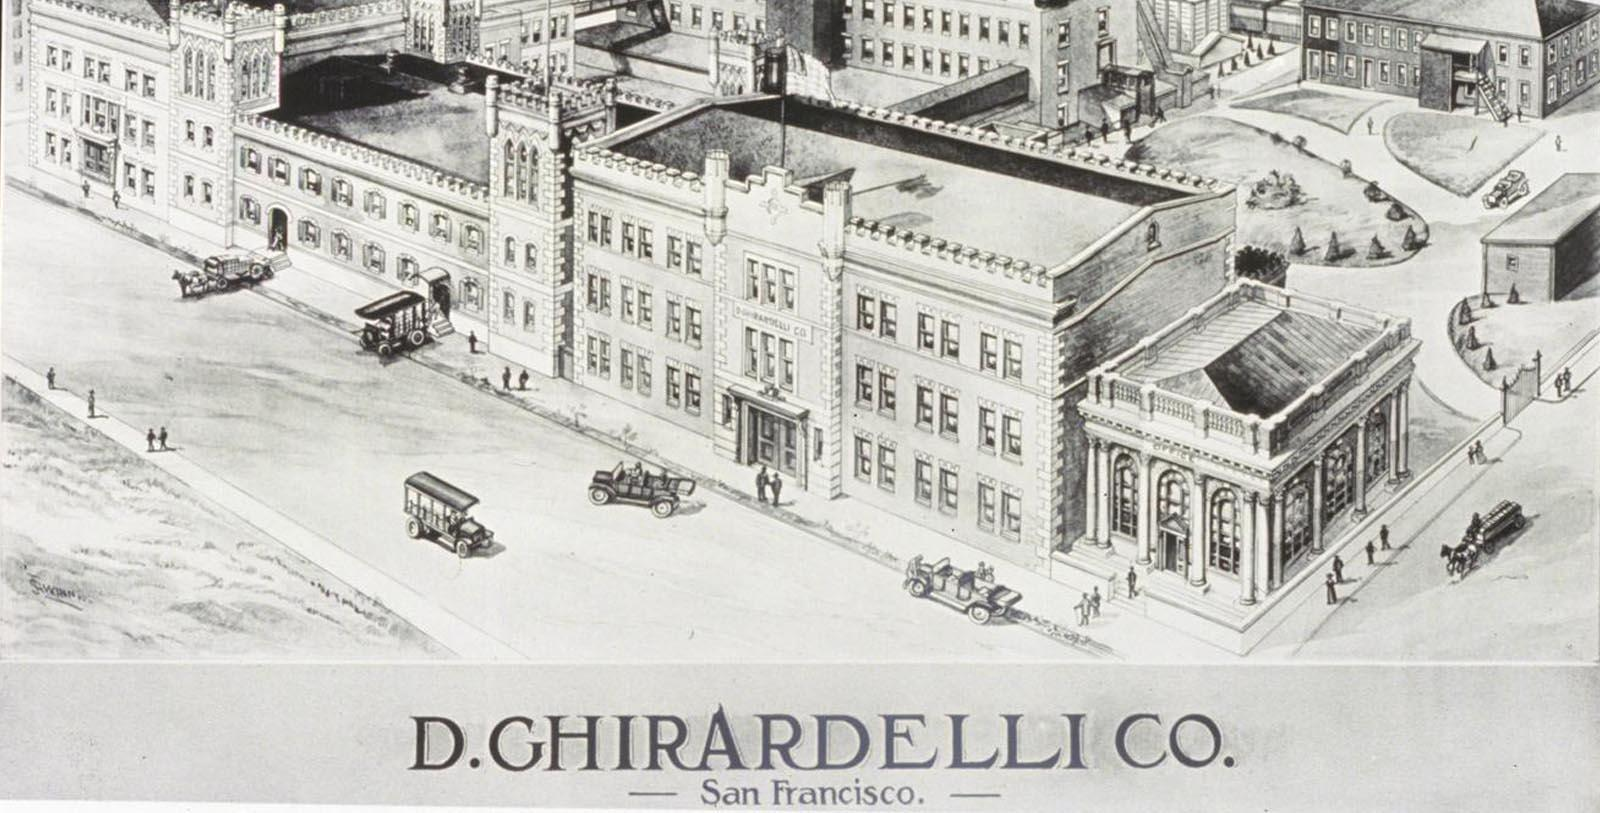 Historic image of hotel exterior at Fairmont Heritage Place, Ghirardelli Square, 1893, Member of Historic Hotels of America, in San Francisco, California, Discover